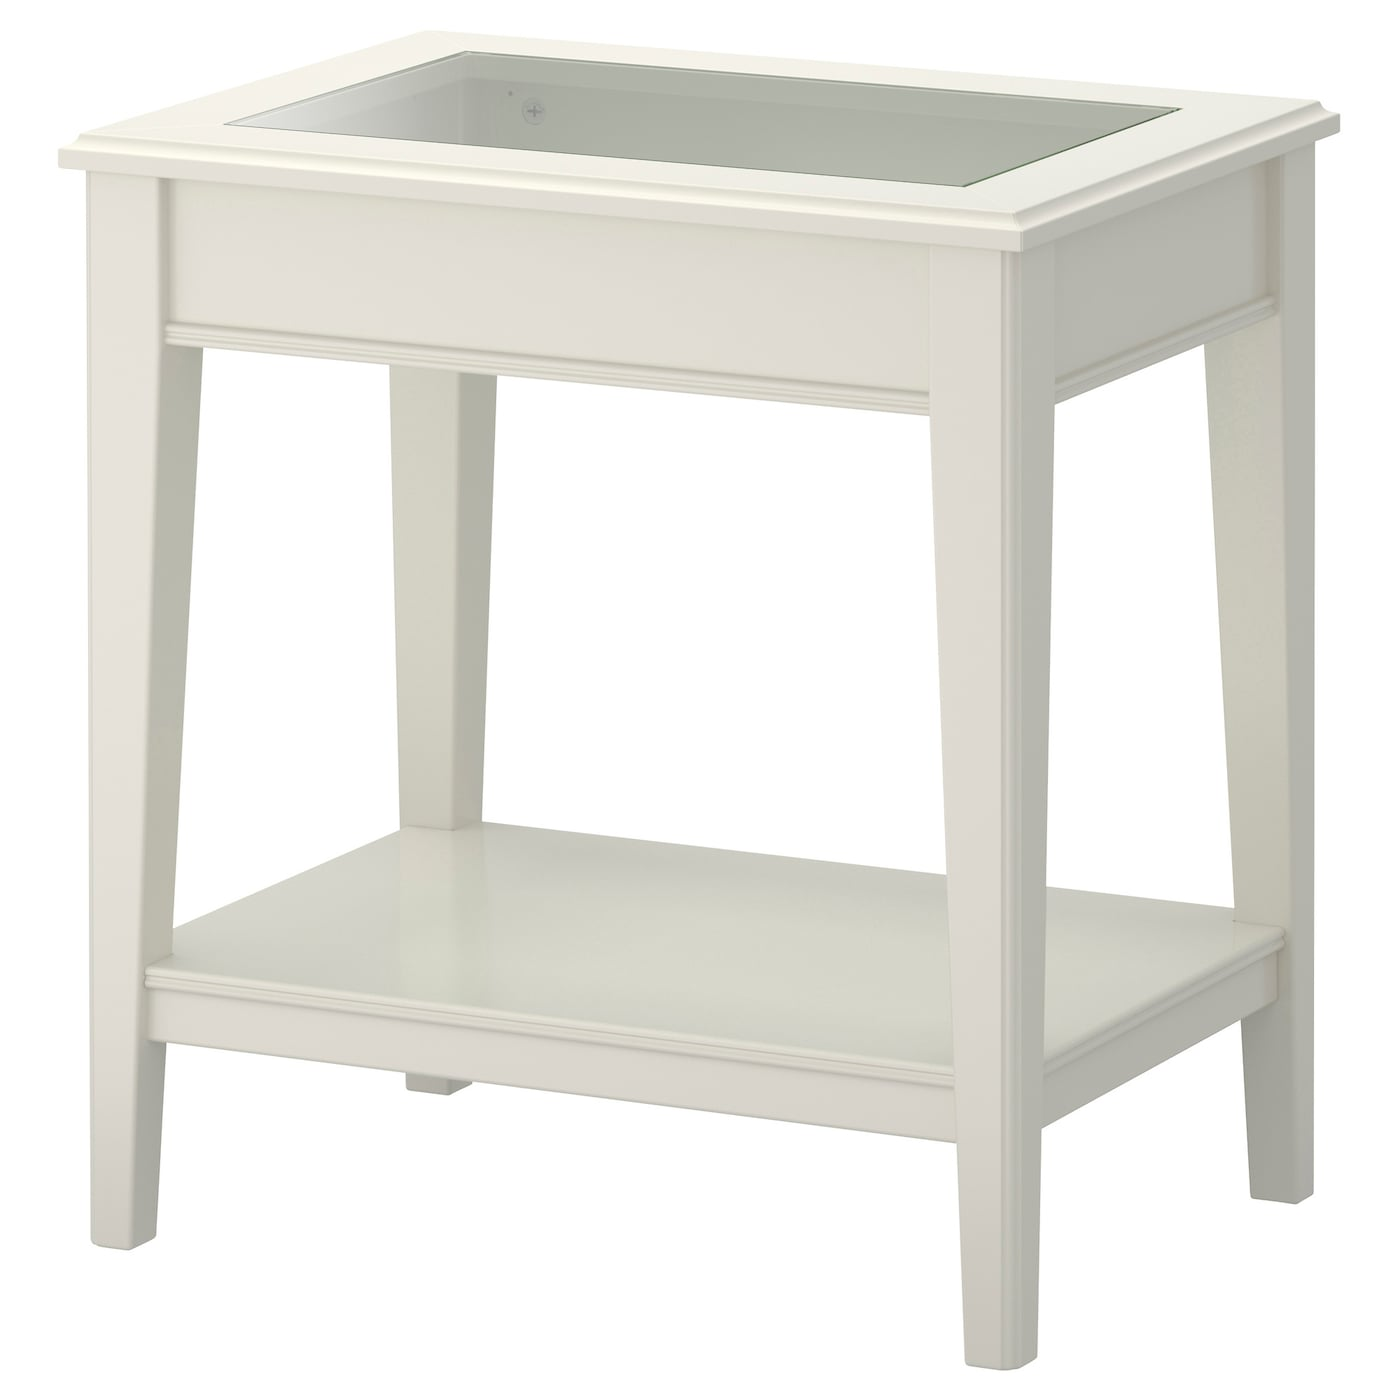 Ikea liatorp side table